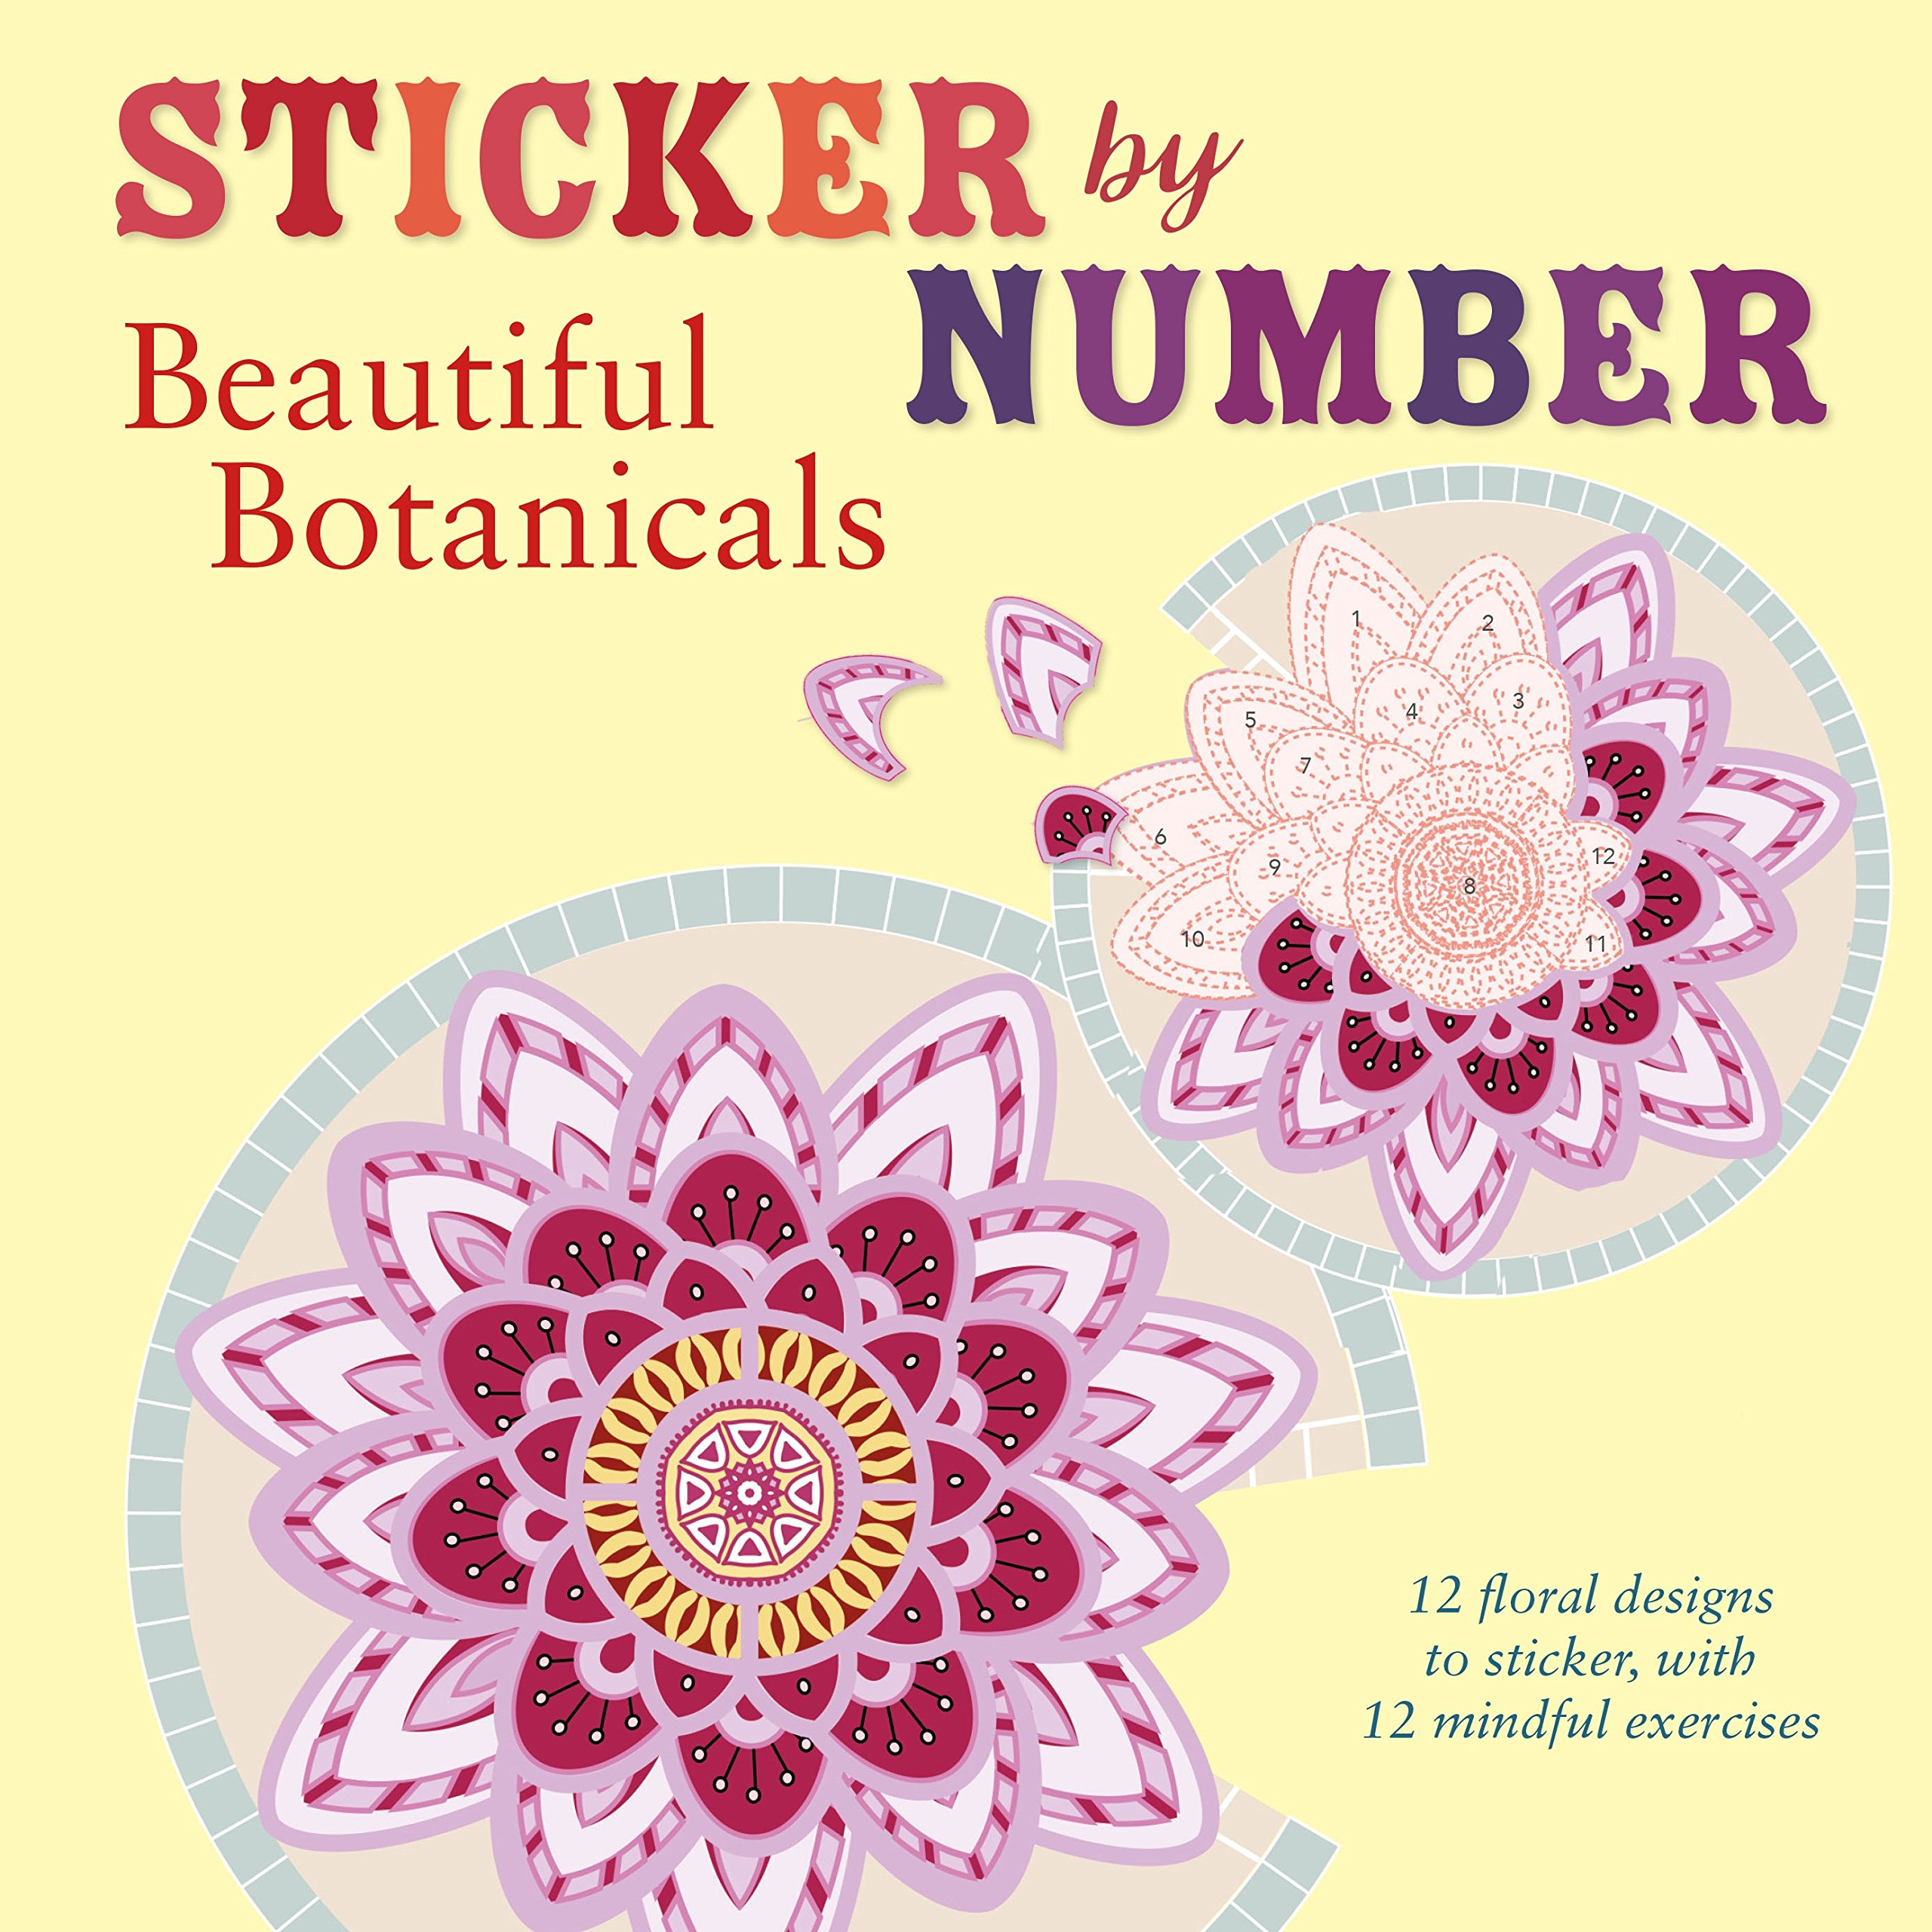 Sticker by Number: Beautiful Botanicals: 12 Floral Designs to Sticker, with 12 Mindful Exercises